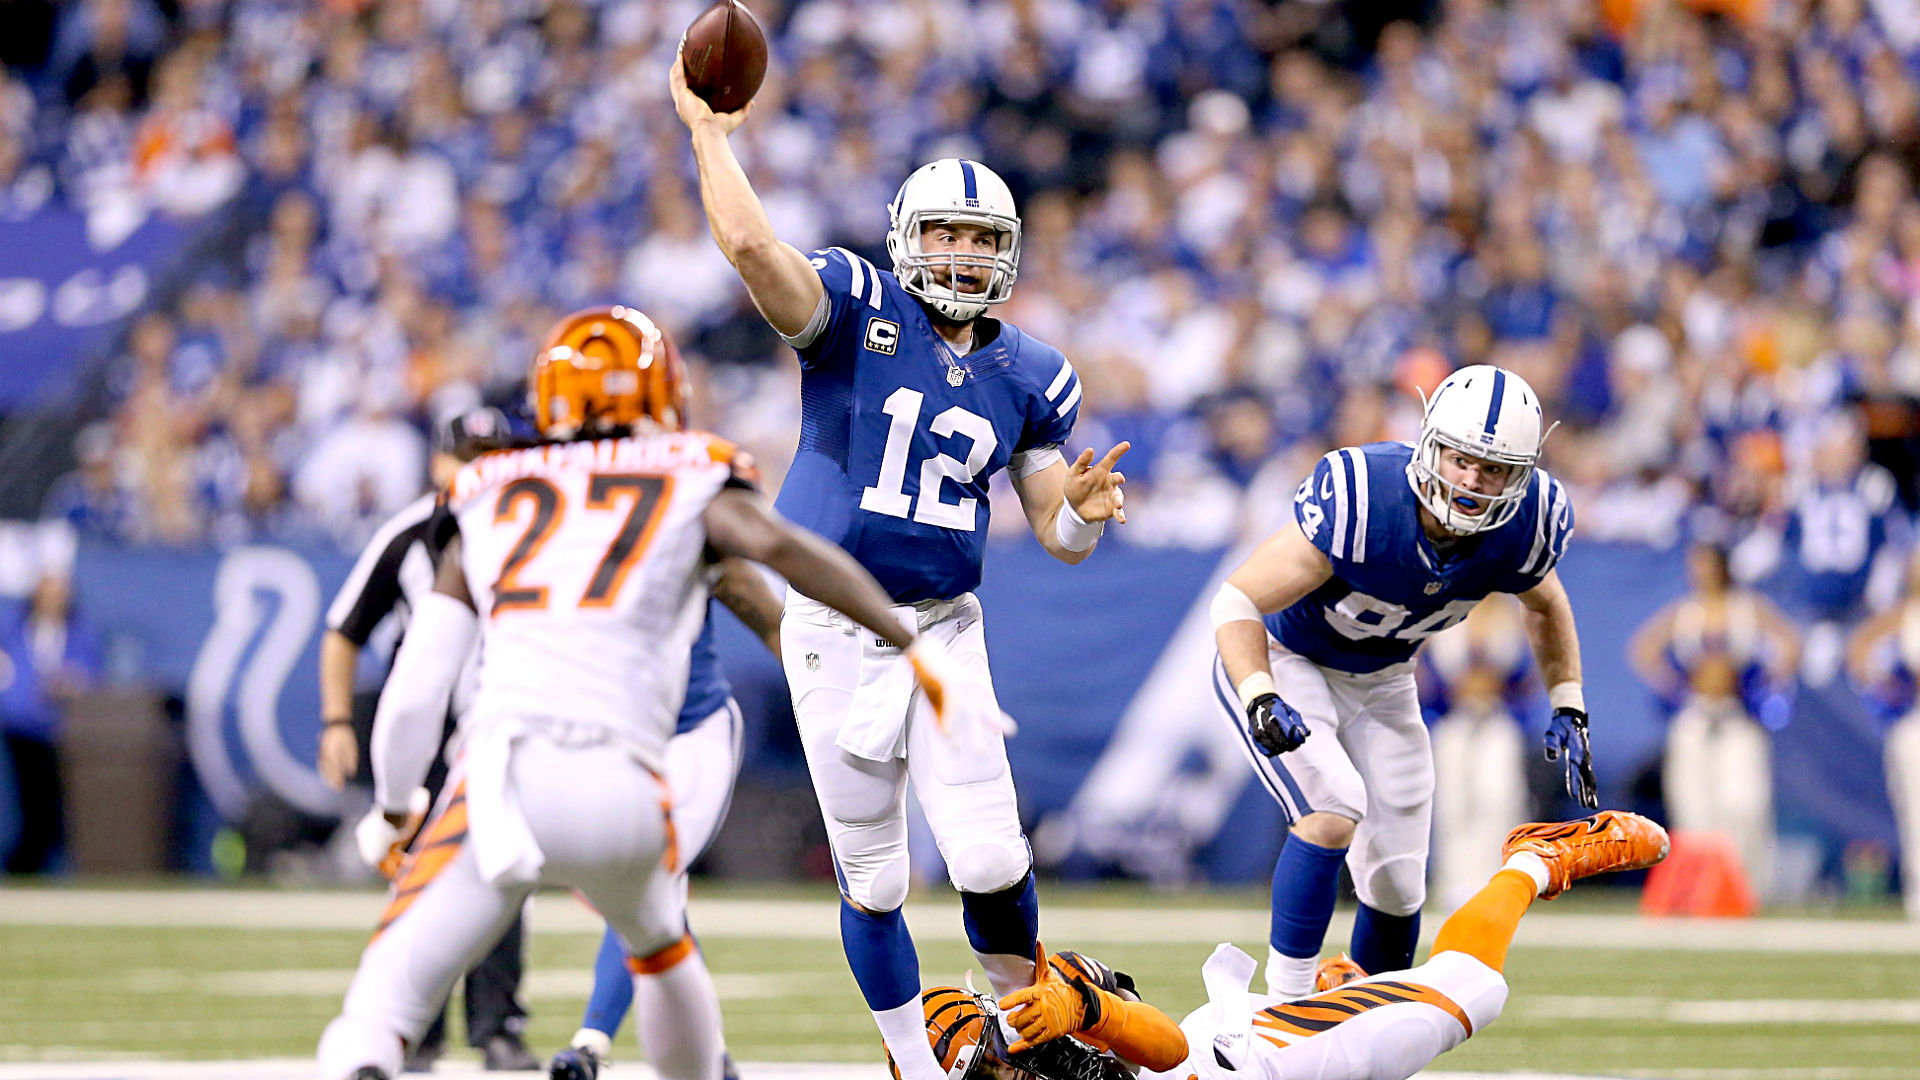 andrew-luck-getty-ftr.jpg